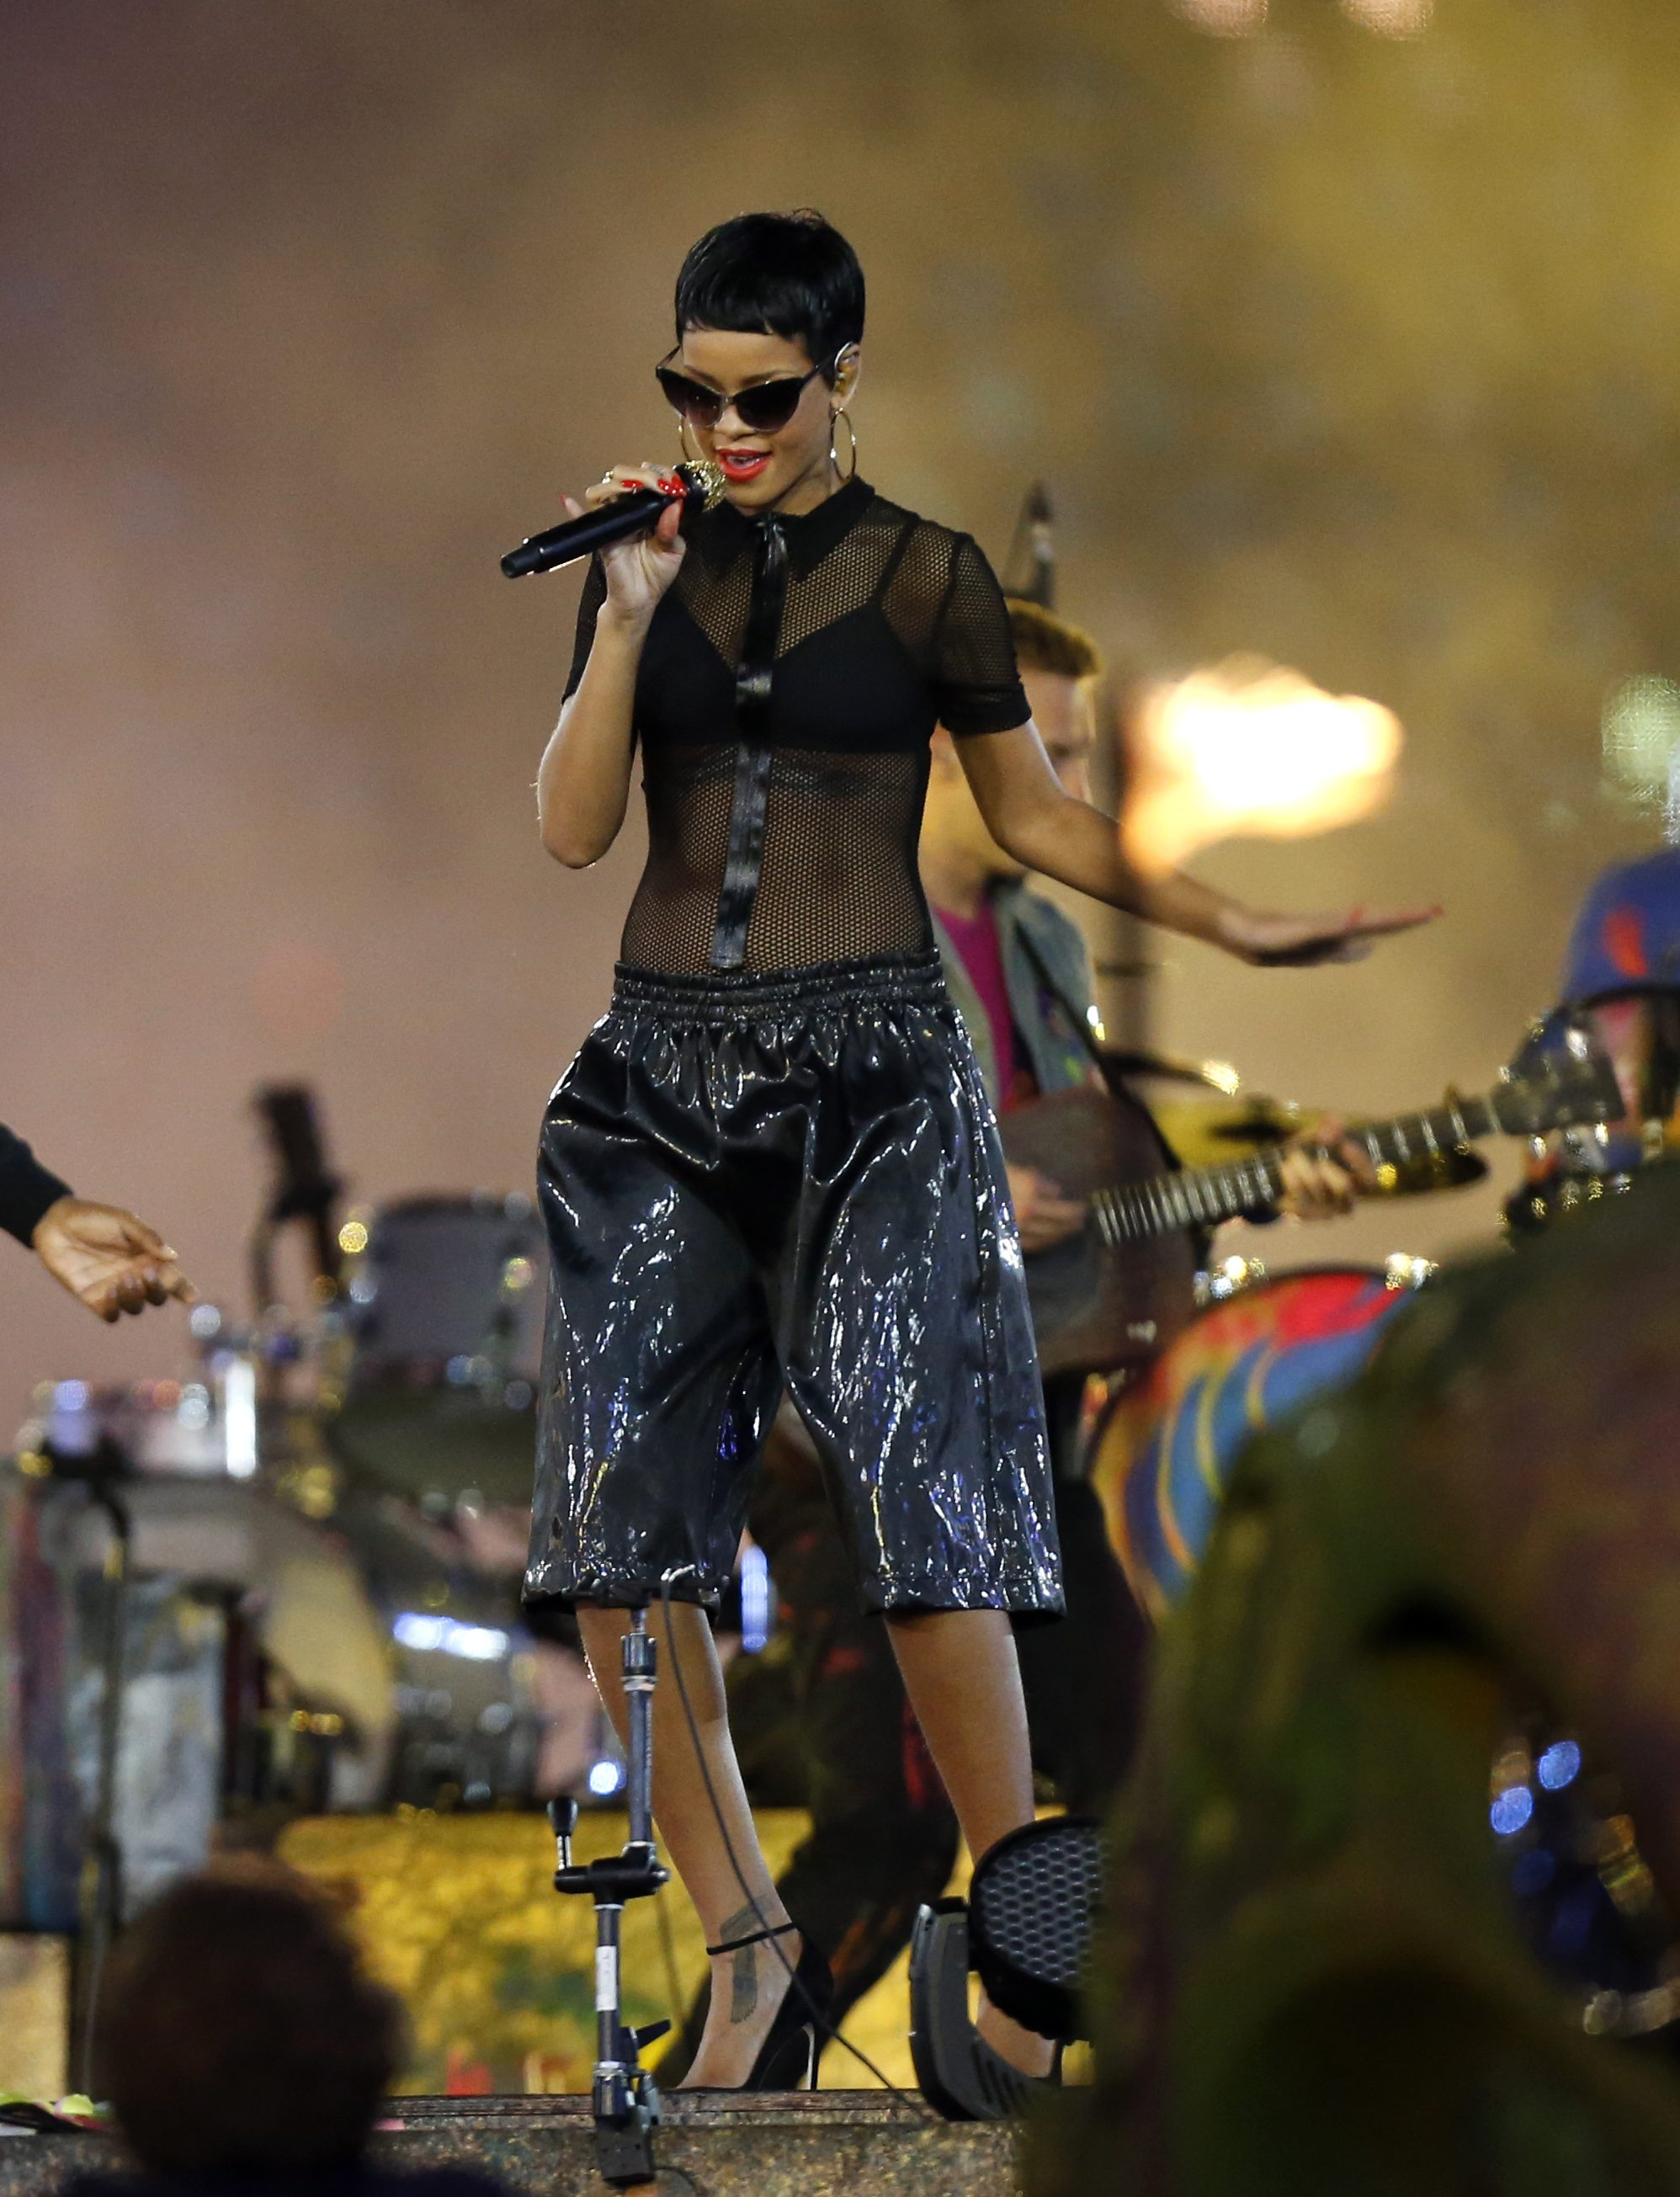 Singer Rihanna from Barbados performs during the closing ceremony for the 2012 Paralympics, Sunday, Sept. 9, 2012, in London.  (AP Photo/Matt Dunham)